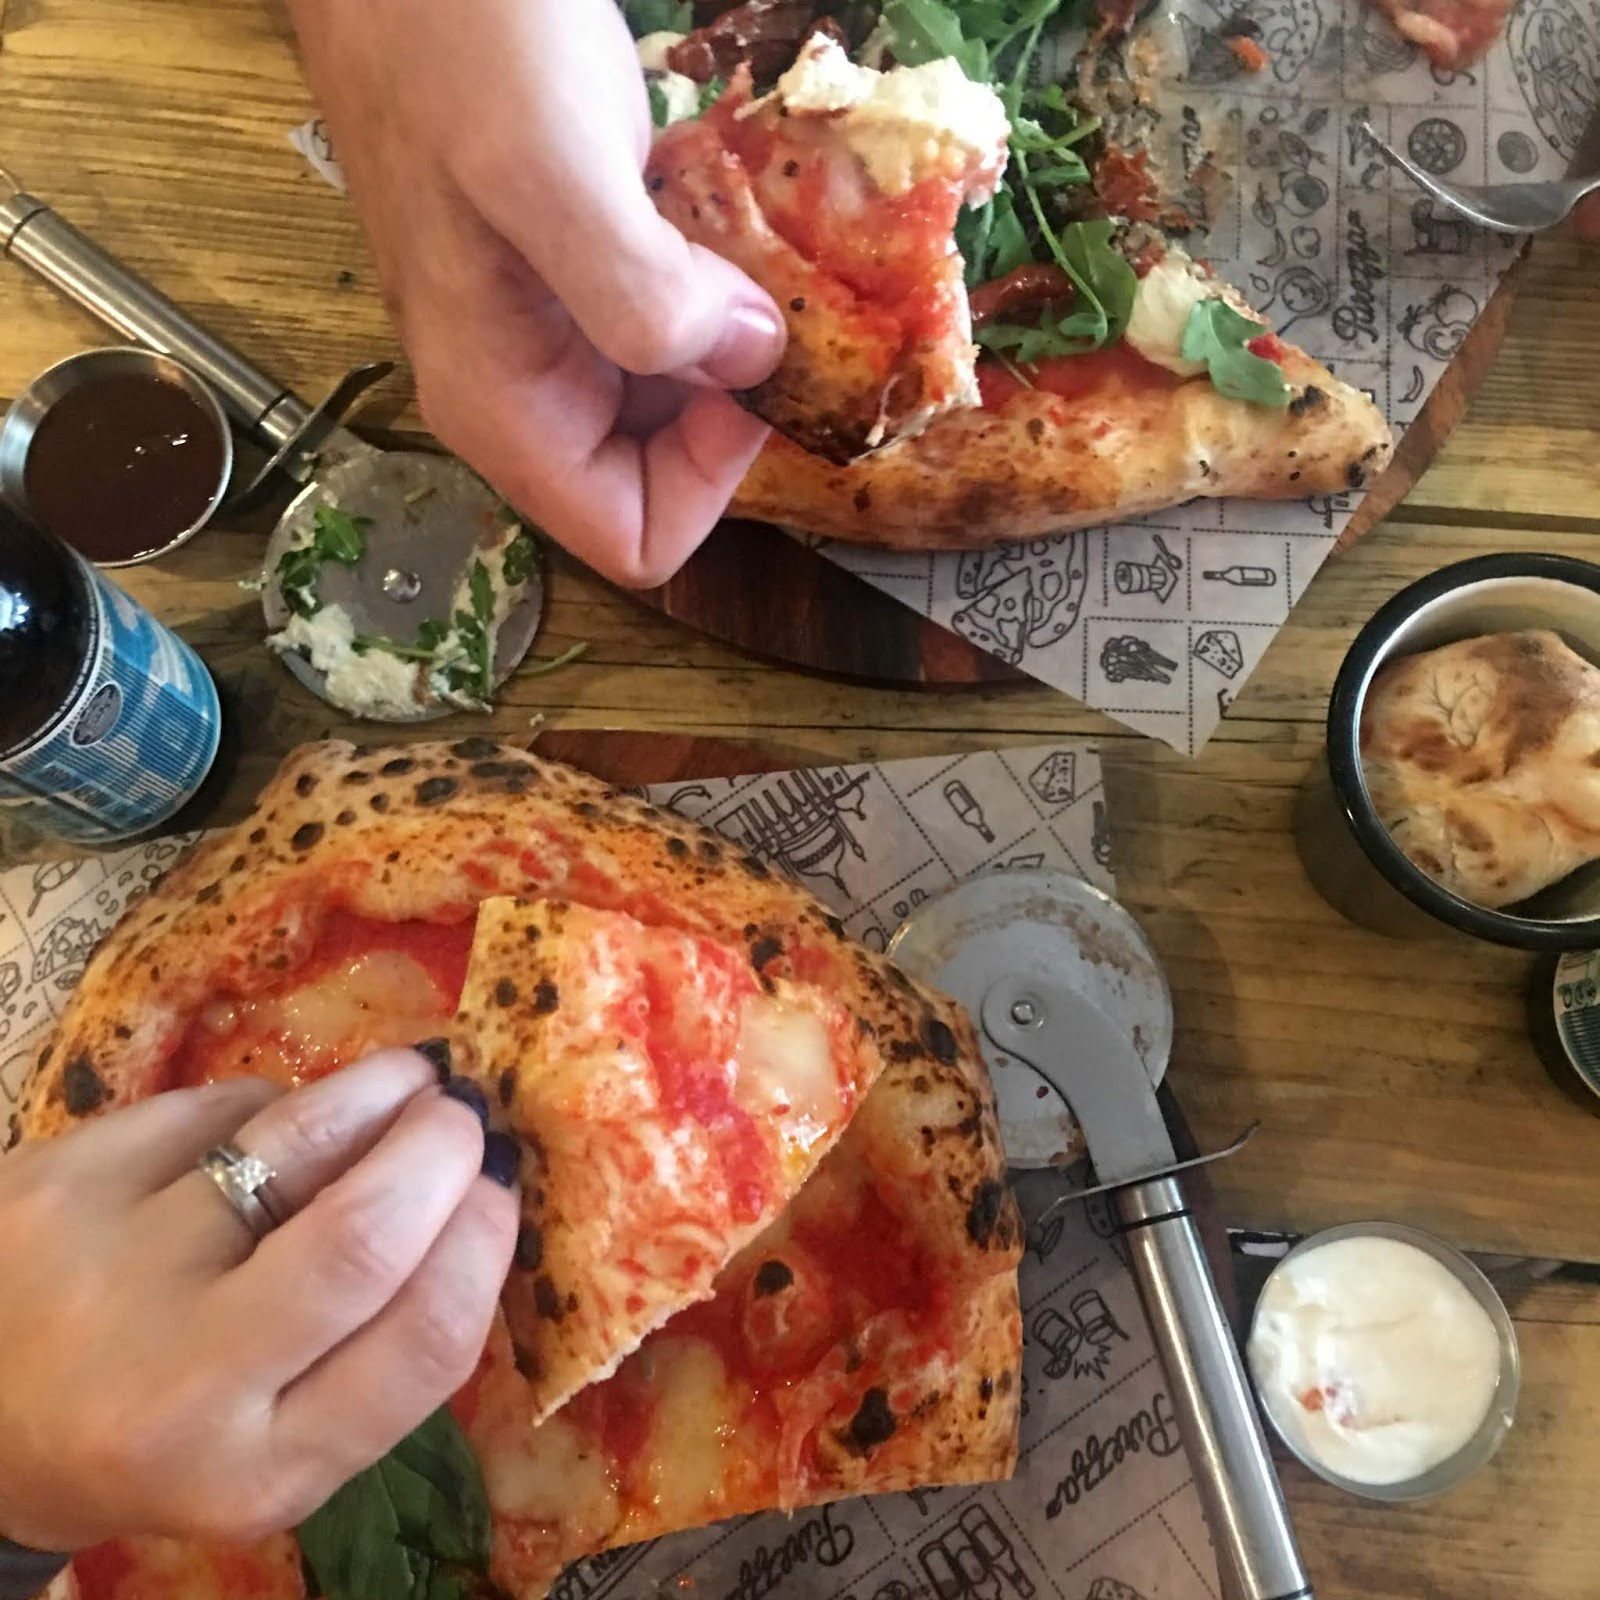 Purezza camden vegan pizza review